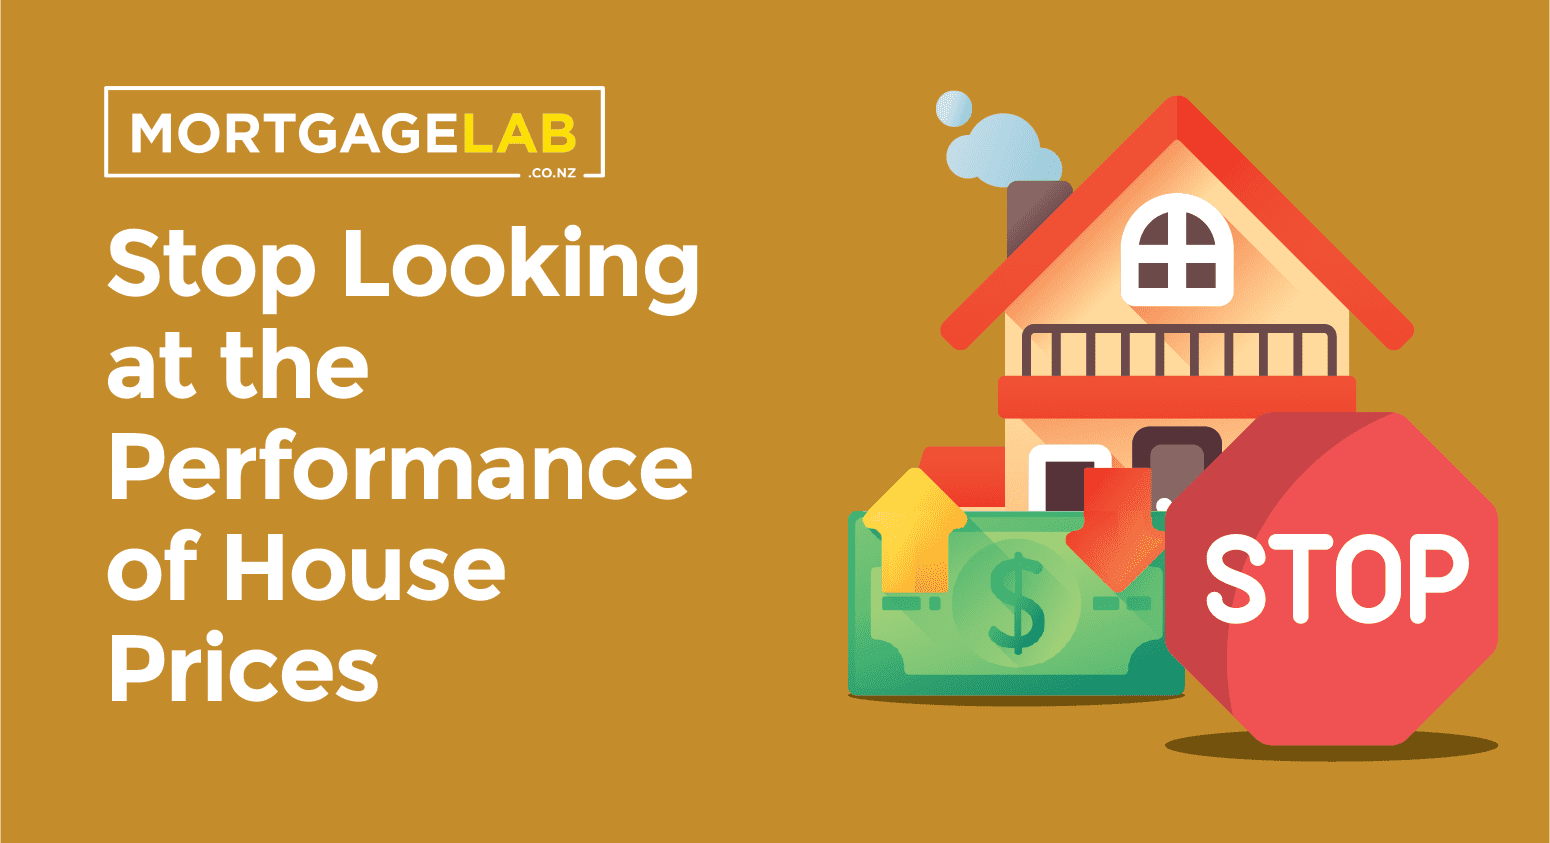 Stop looking at the Performance of House Prices